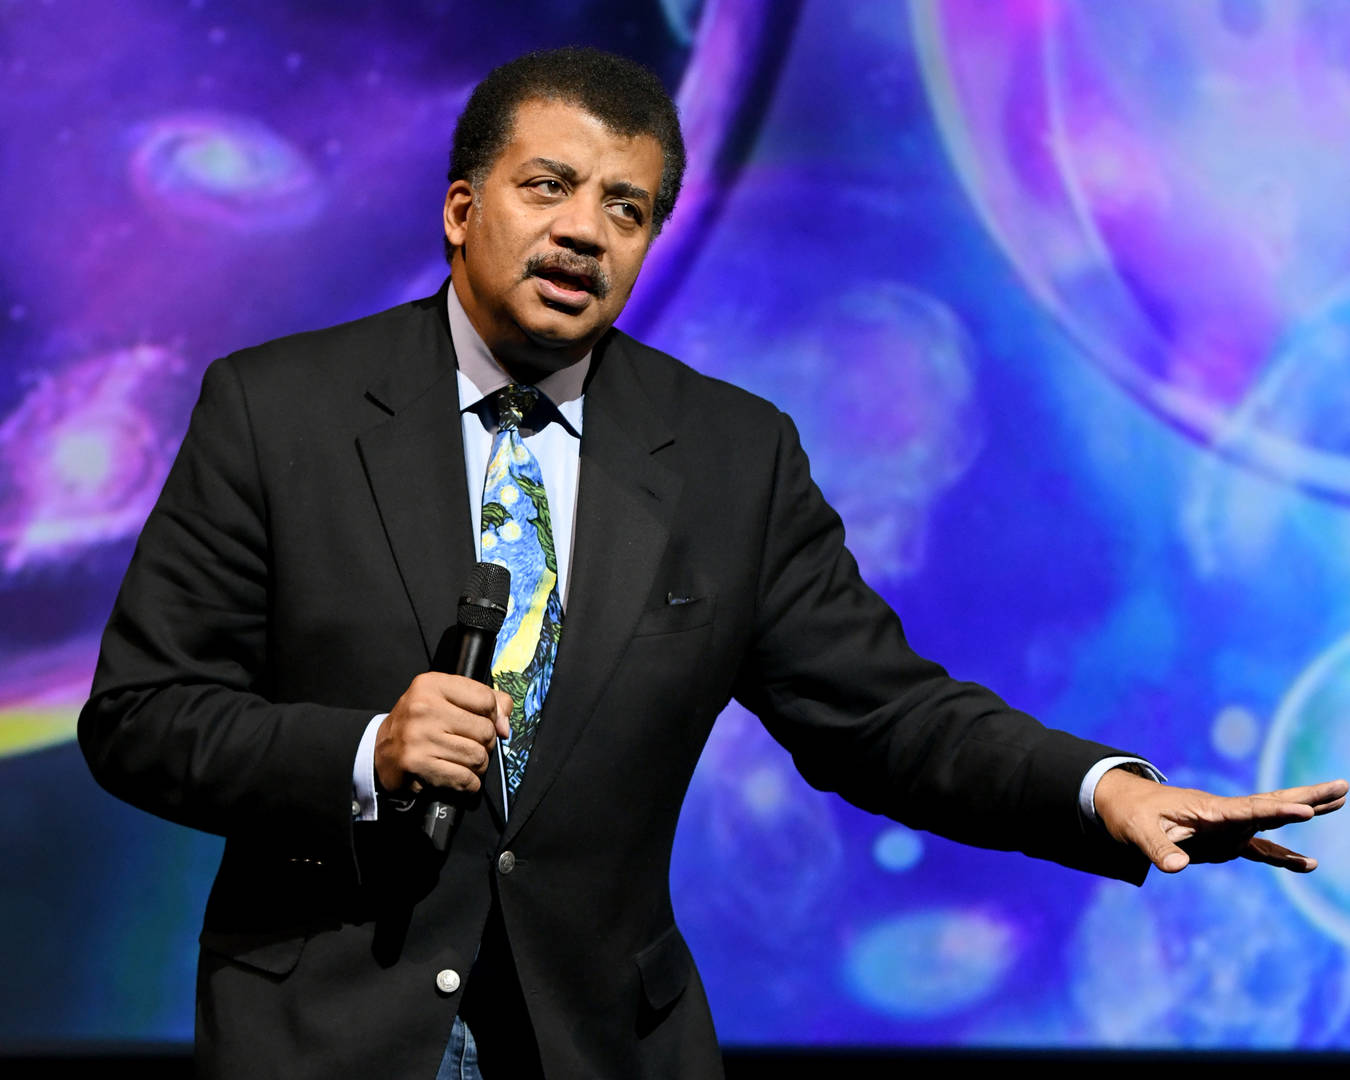 Neil deGrasse Tyson Warns Asteroid May Hit Earth a Day Before Election